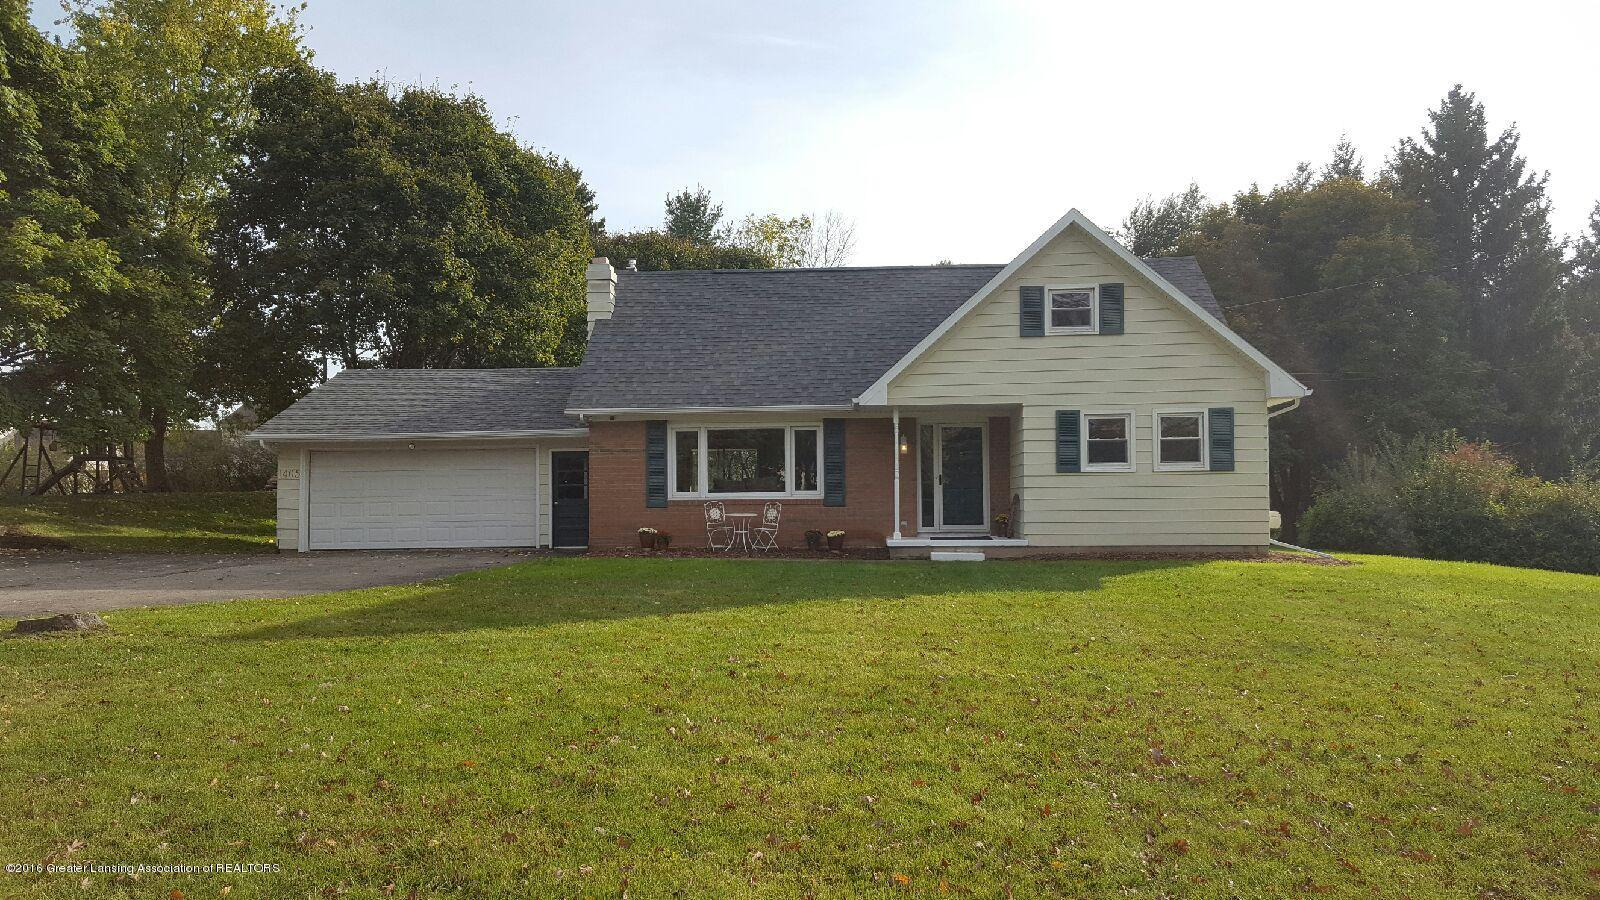 1405 W Dill Rd - Resized_20161028_155505 - 1